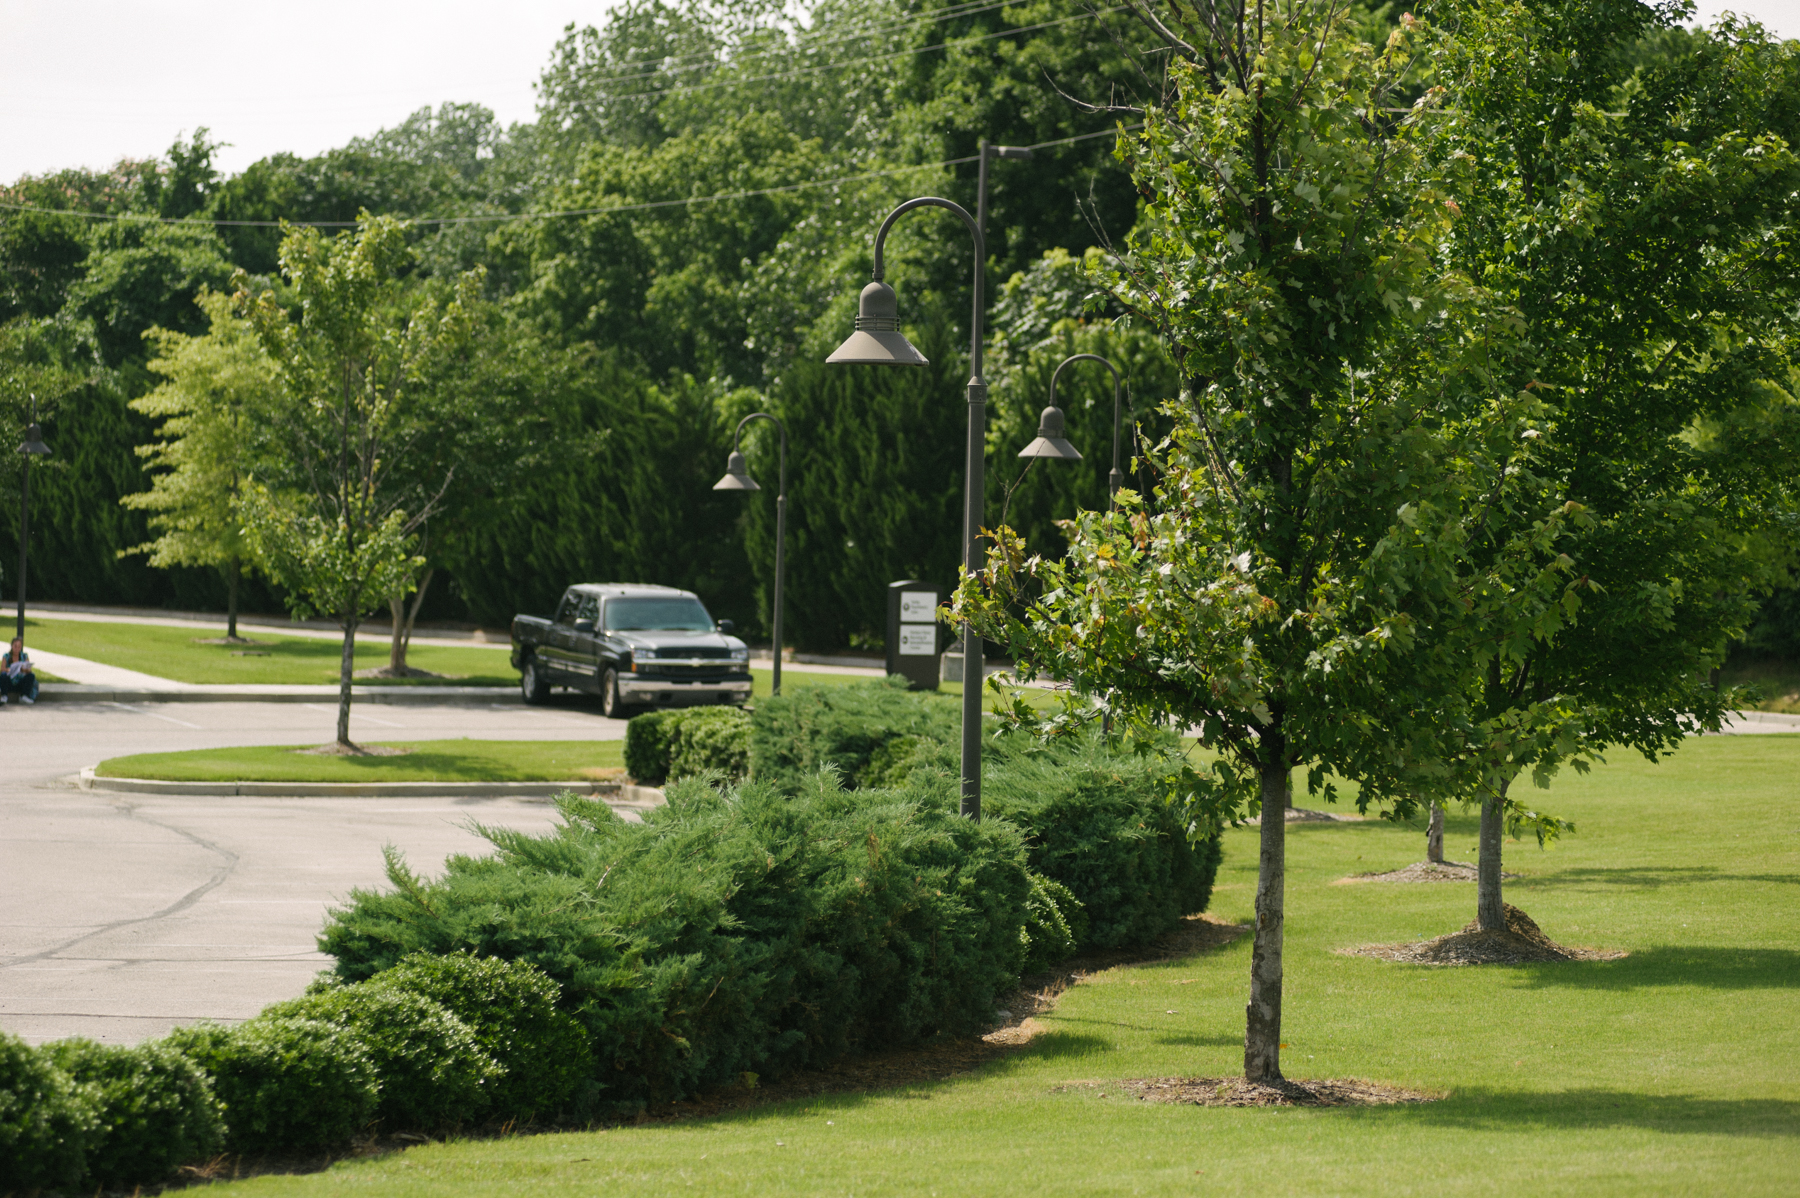 commercial landscaping parking lot with trees and shrubs